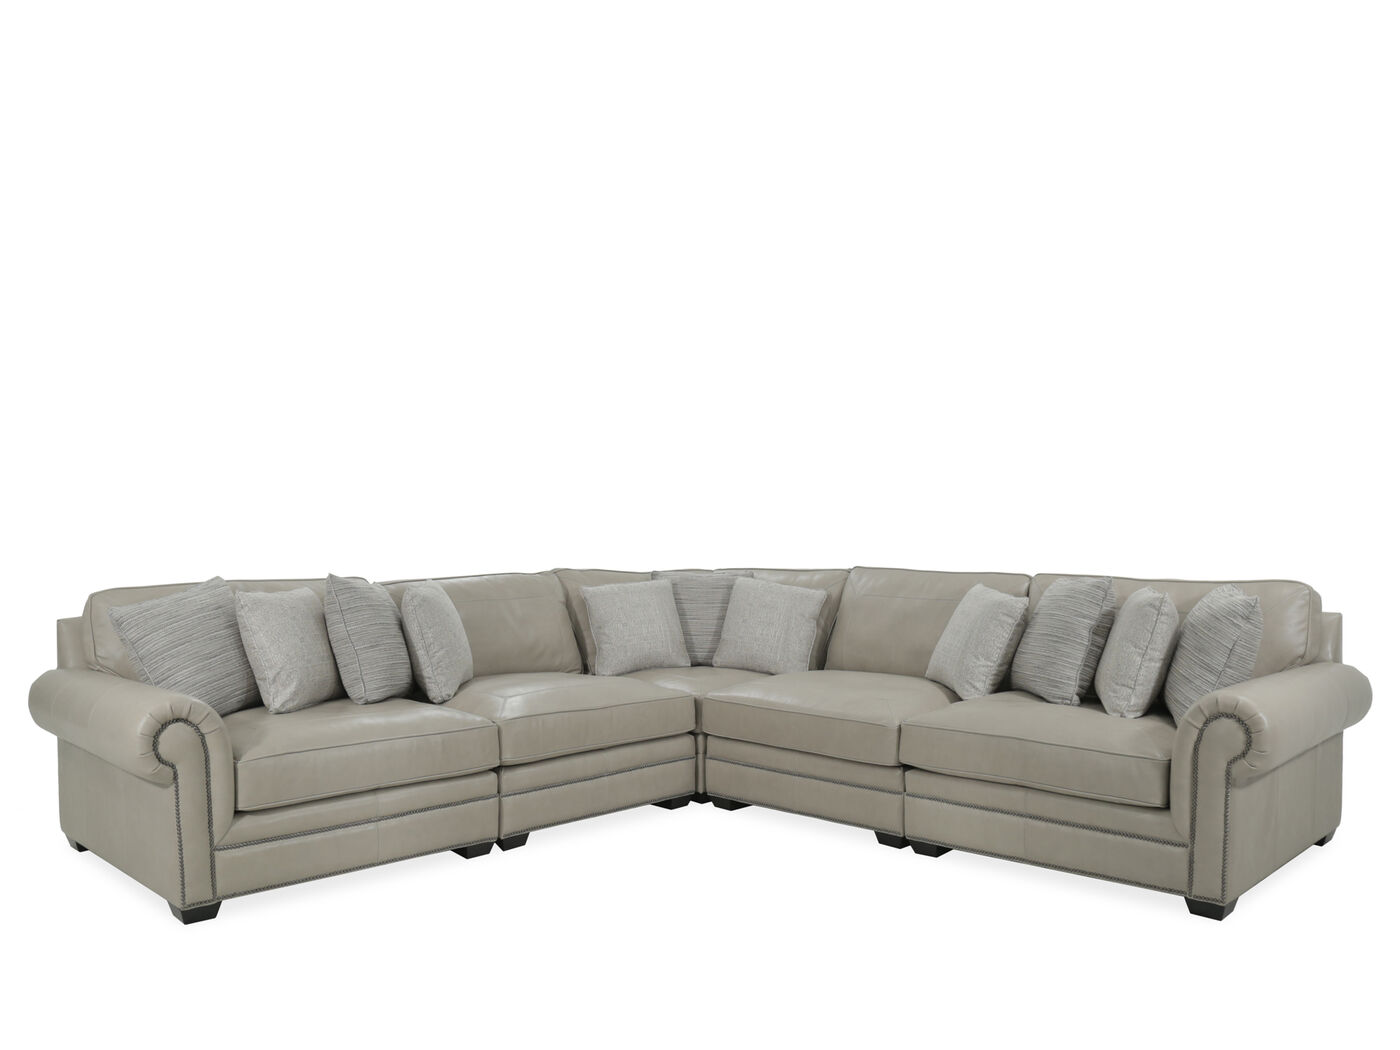 Five Piece Leather Sectional In Beige Mathis Brothers Furniture ~ Five Piece Sectional Sofa